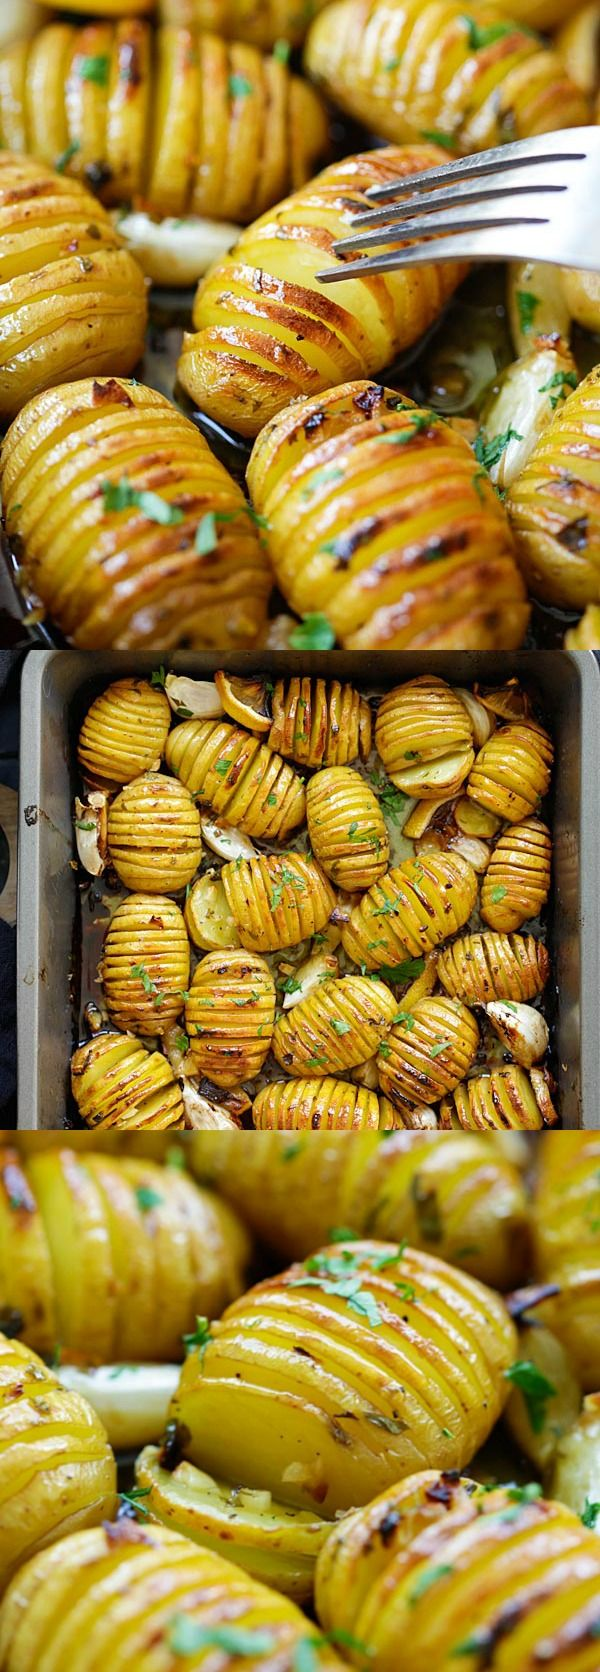 Lemon Herb Roasted Potatoes - BEST roasted potatoes you'll ever make, loaded with butter, lemon, garlic and herb. 15 mins active time!